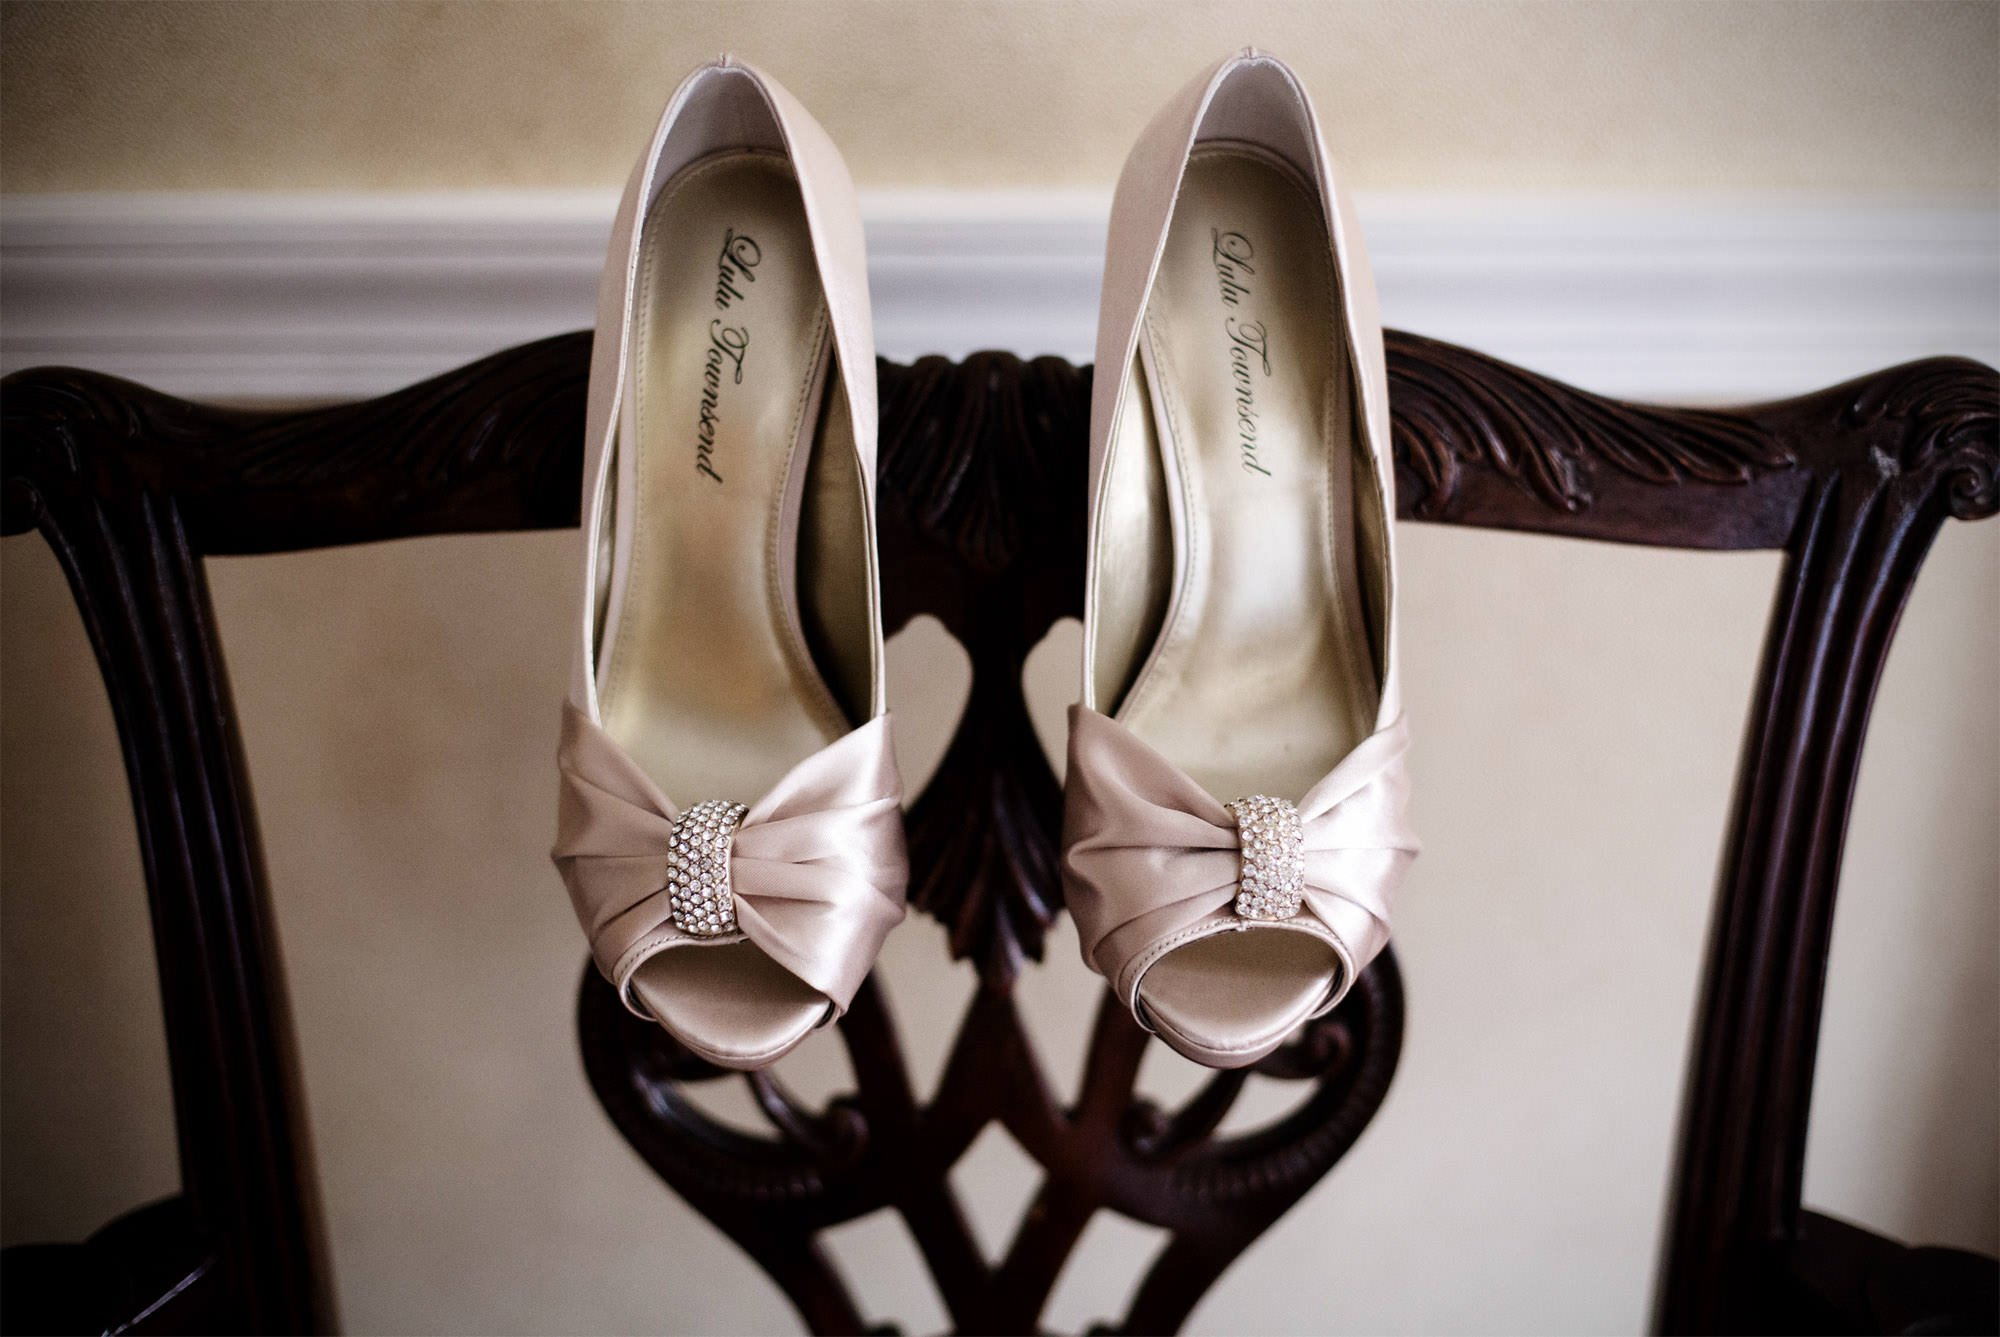 Details of the bride's shoes.